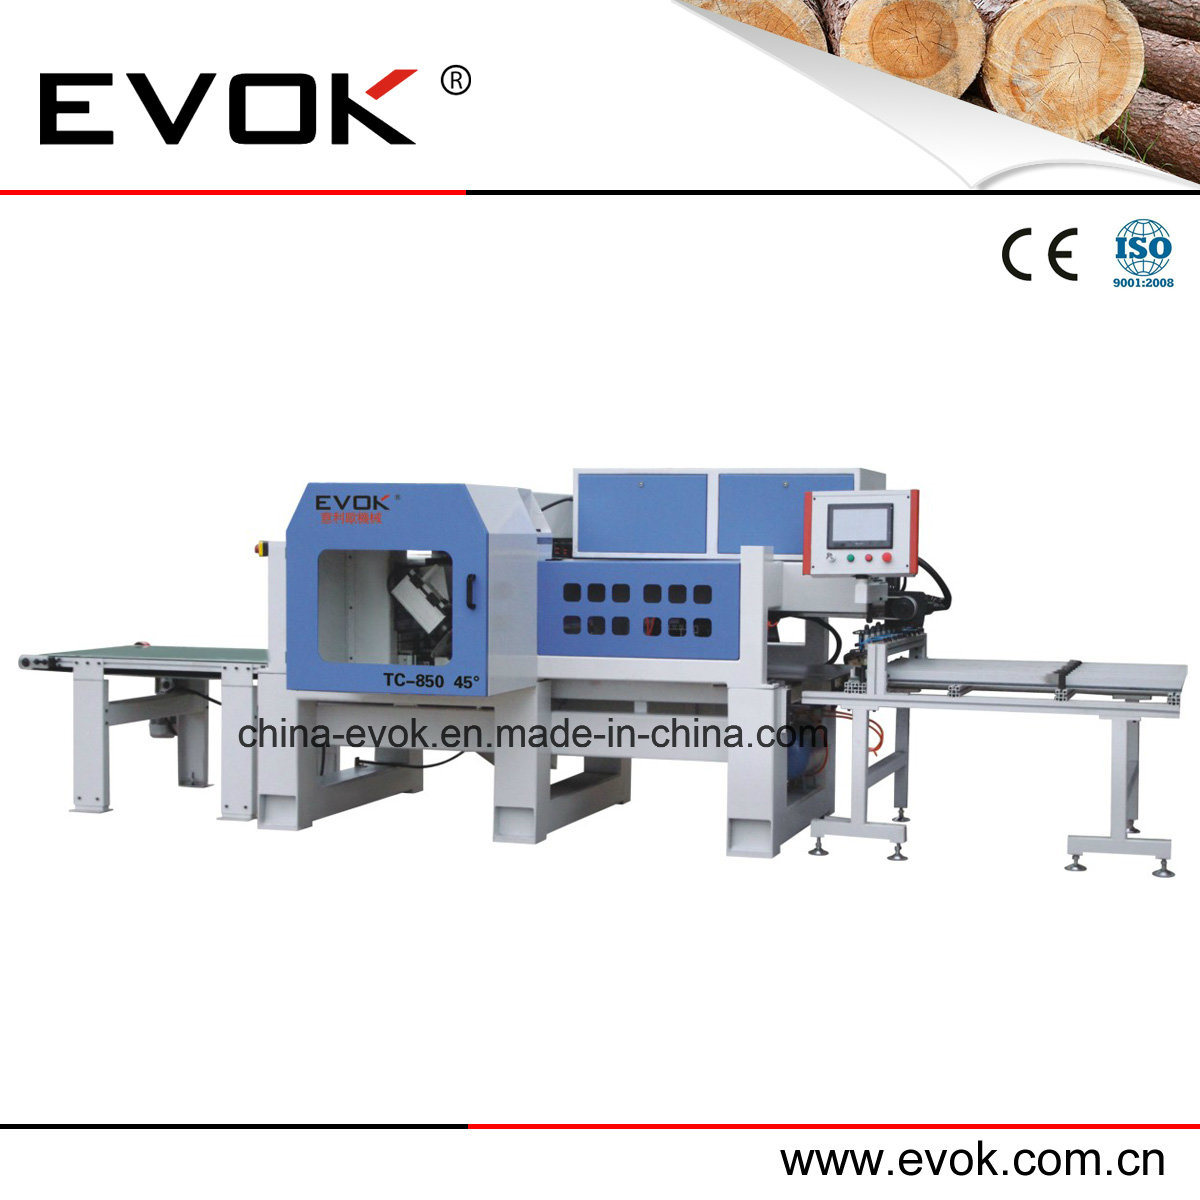 CNC High Speed Auatomatic Woodworking Dual Saw Cutting Machine Tc-850